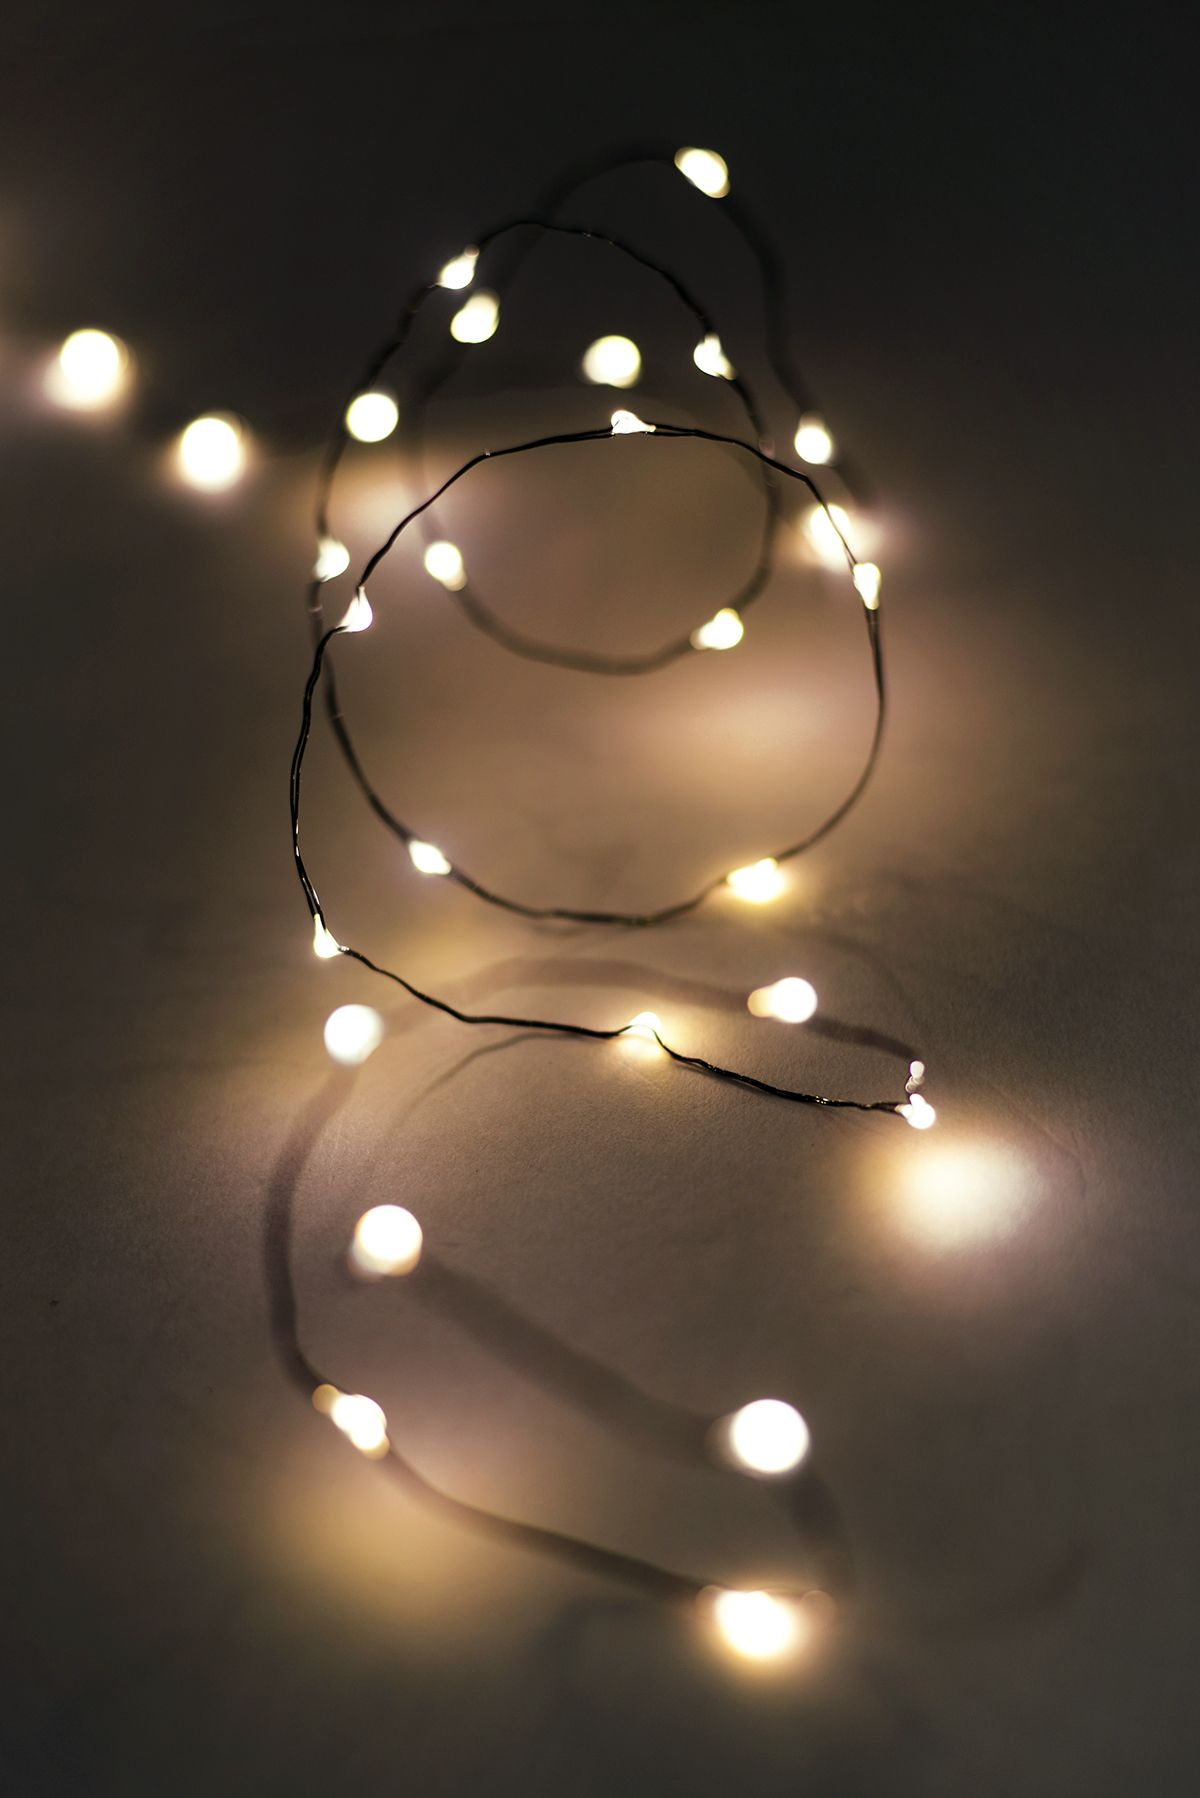 Fairy lights outdoor 10ft 60 warm white battery op lights wedding ten feet strand of outdoor battery operated 60 warm white led fairy lights each light is space apart with a lead wire to aloadofball Image collections